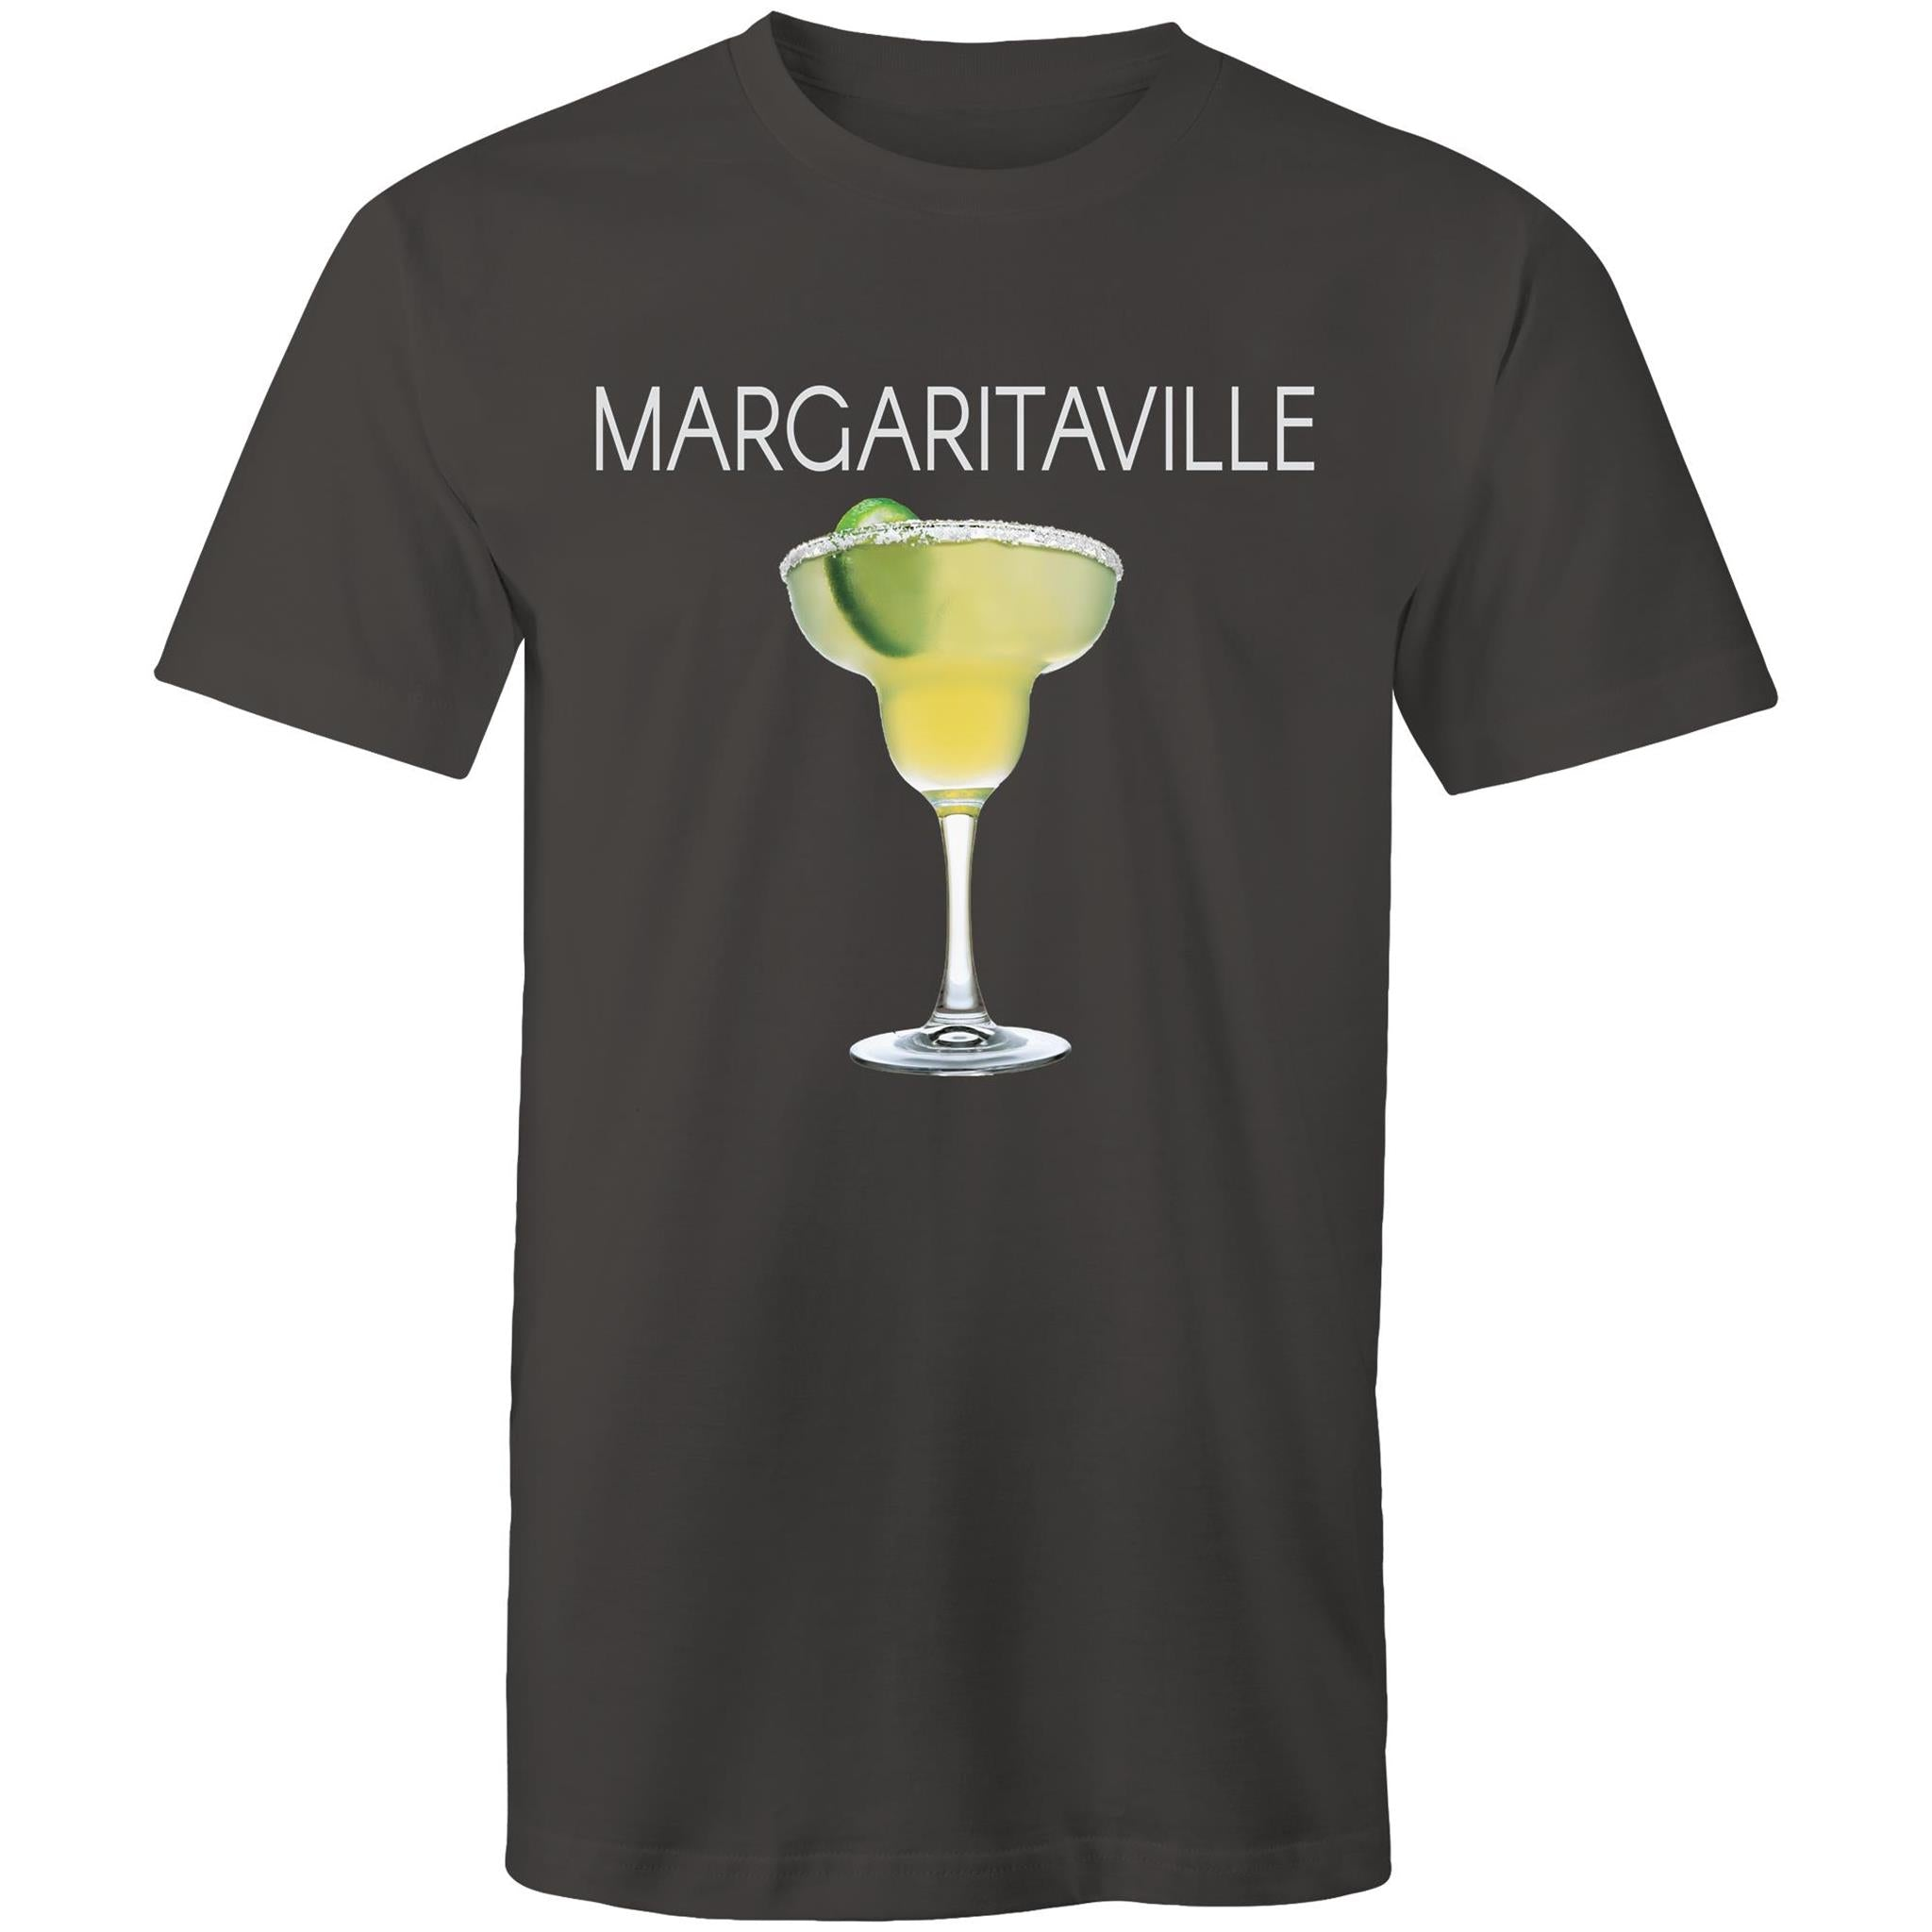 A mid grey T-shirt with an image of a frozen margarita, with Margaritaville written across the chest.